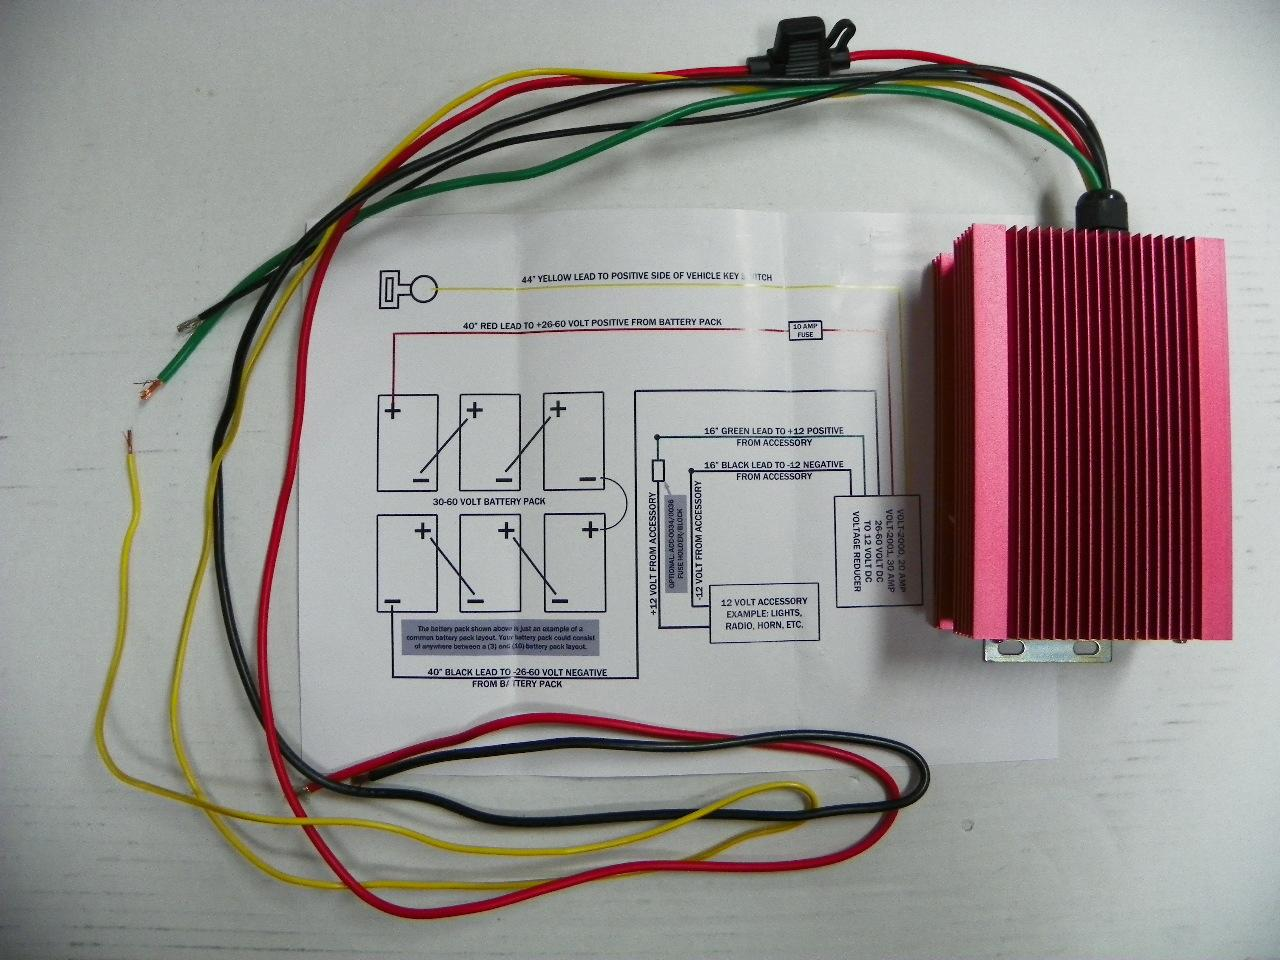 48 Volt Wiring Diagram Reducer Free For You Club Car Golf Cart 36 20 Amp Voltage Converter Troubleshooting Ezgo